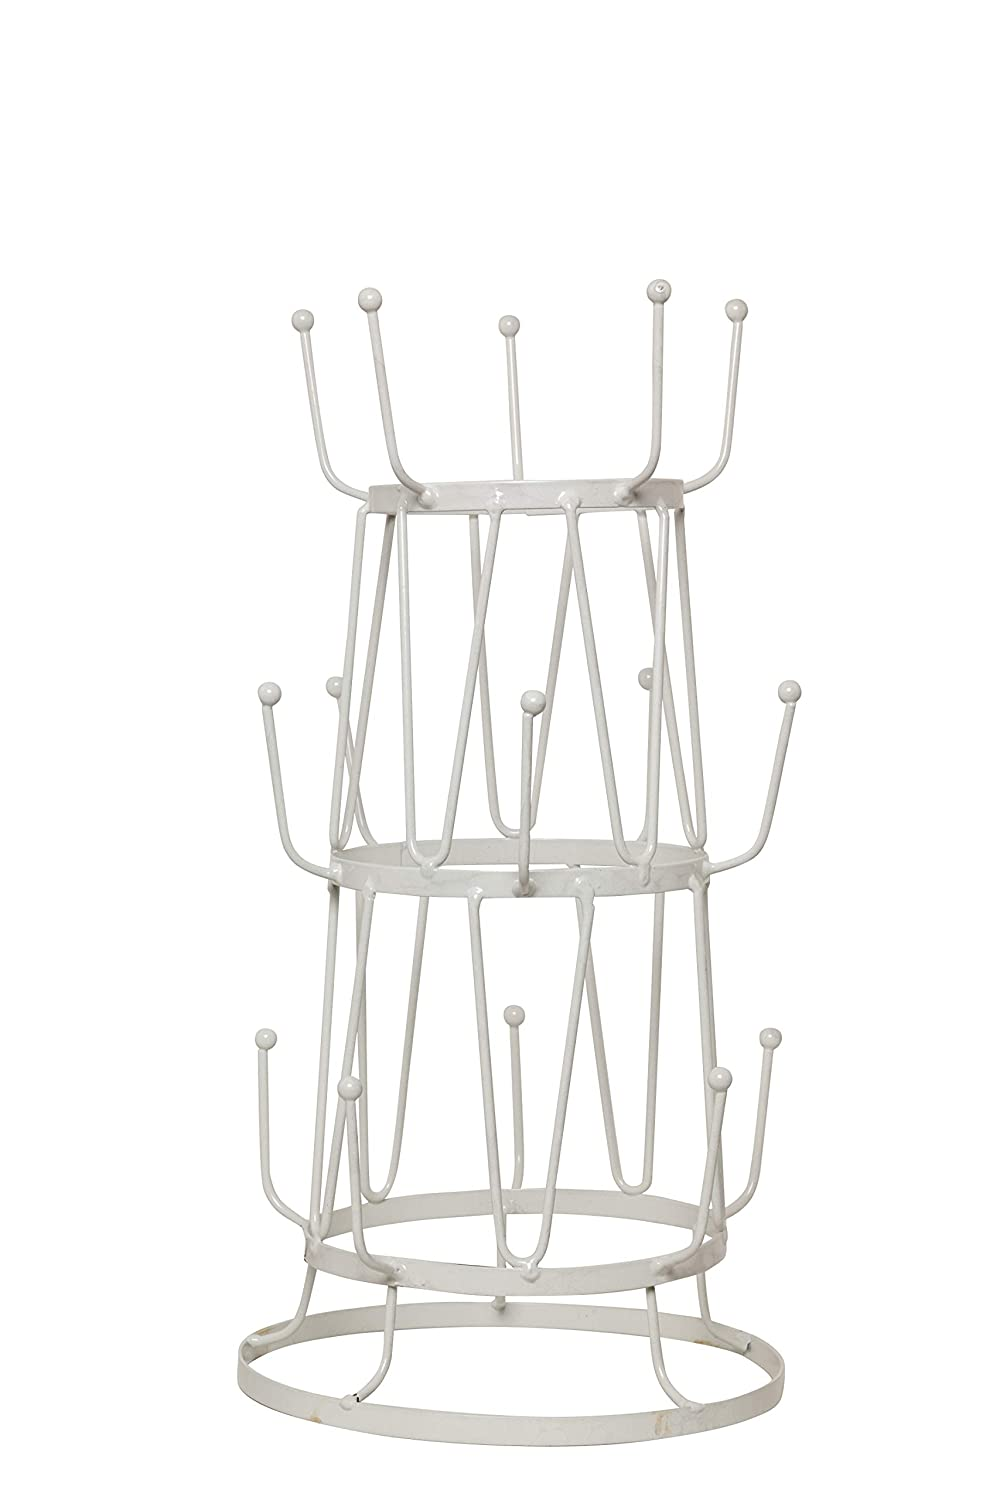 Useful. Uh Mt304 Mug Tree Stand Display Or Storage Purpose For Kitchen Counter, Coffee Table, Or Cabinet Storage (Black) (White) by Useful.